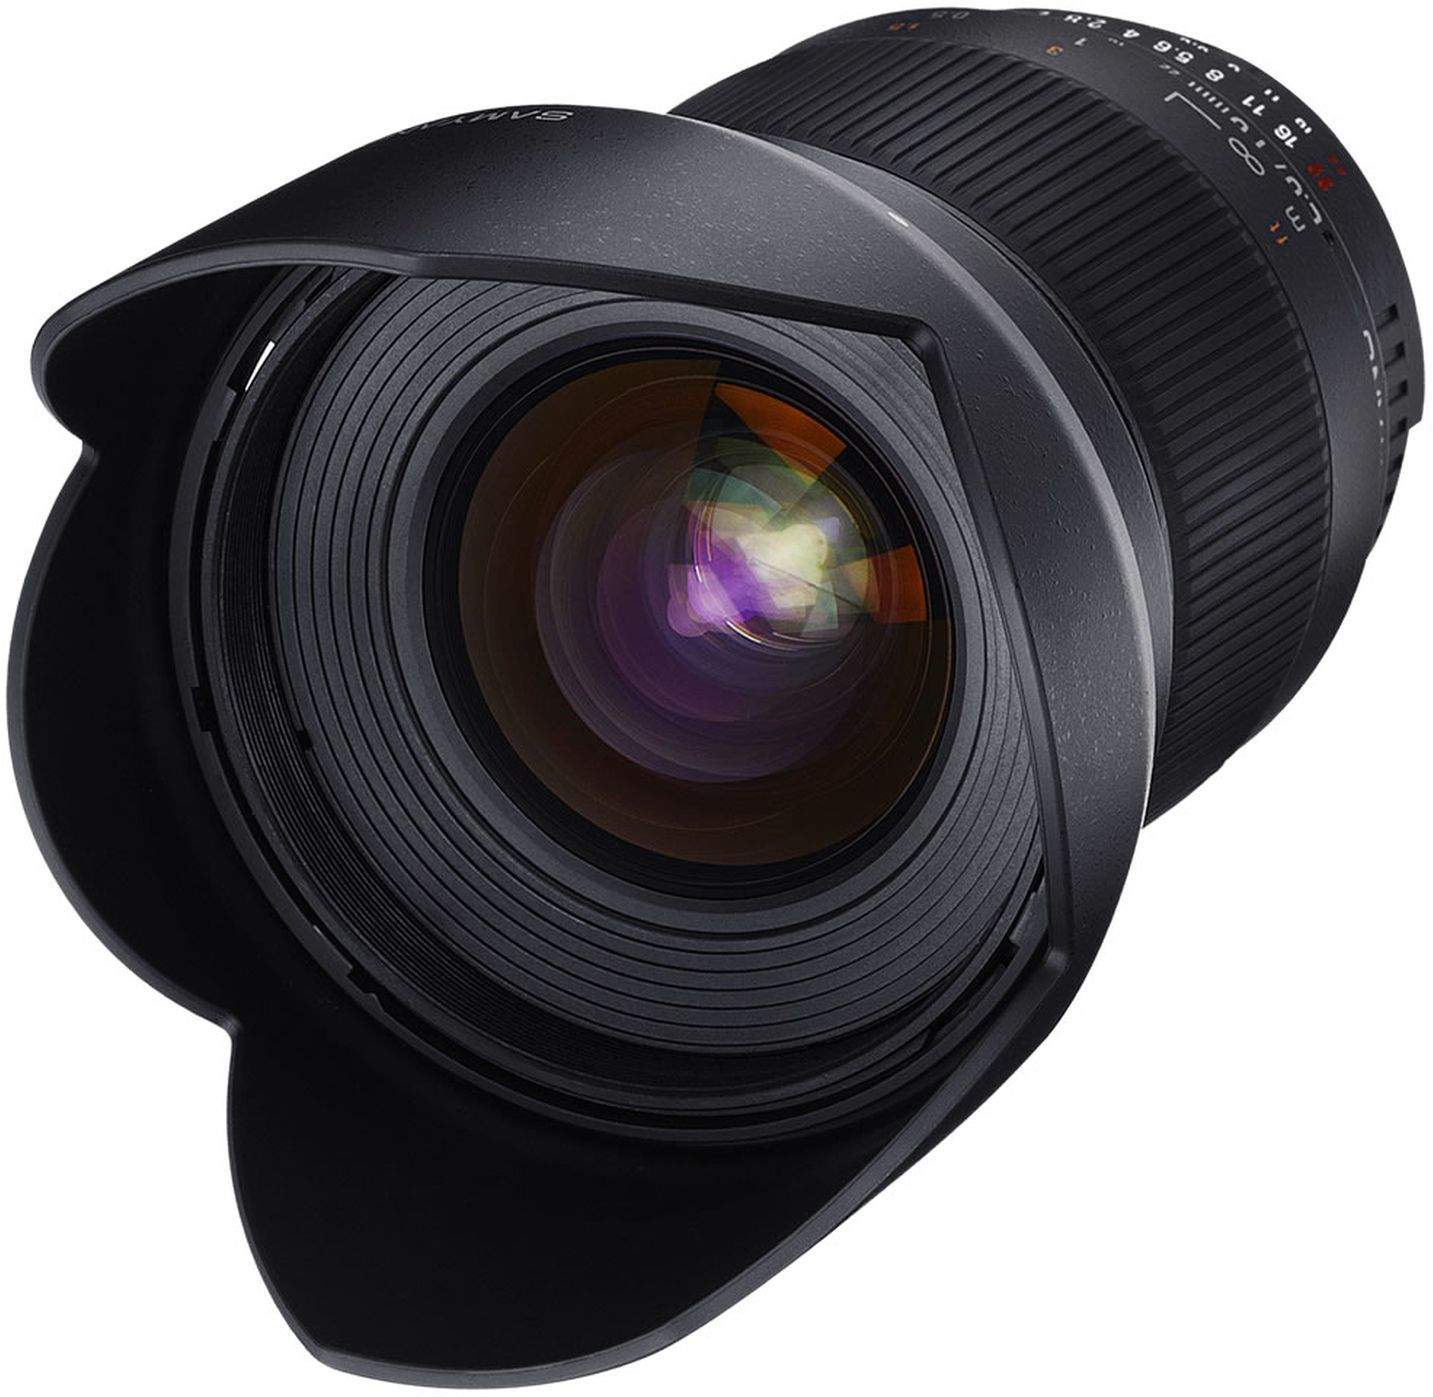 Samyang 16mm F2.0 UMC II APS-C Sony A Camera Lens main image